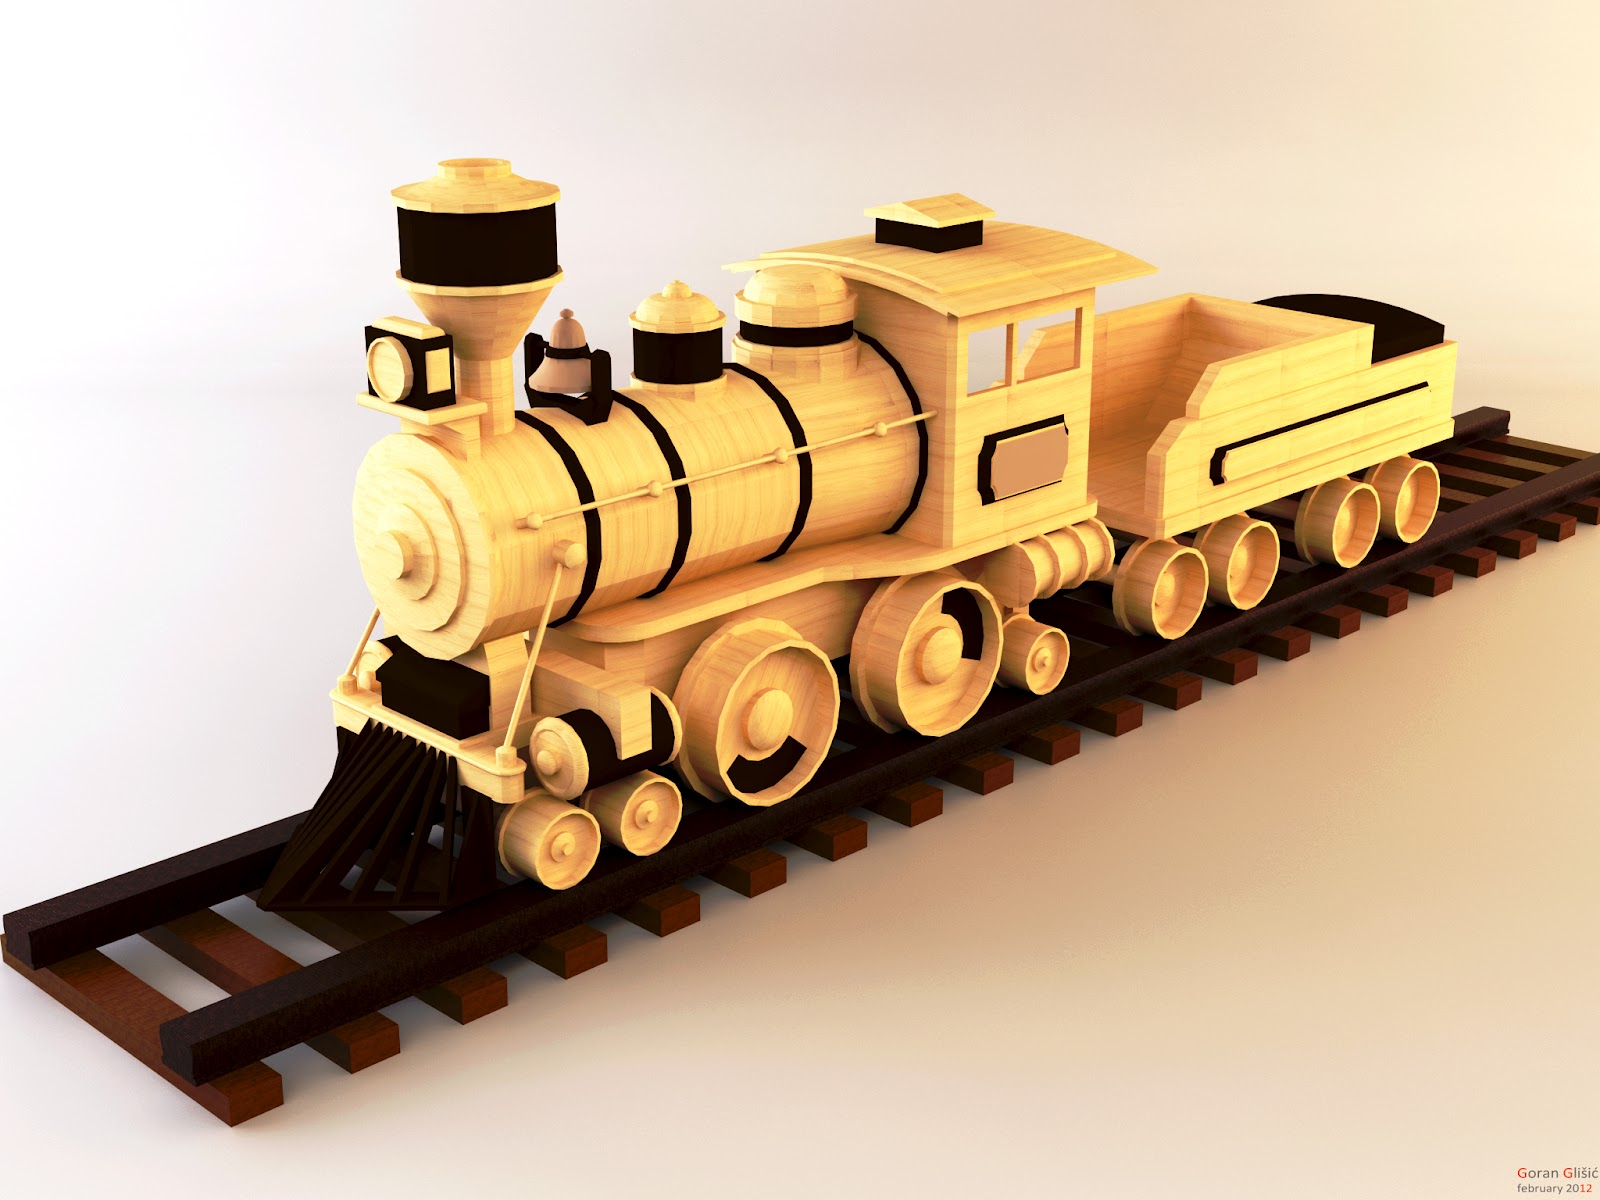 Goran Glišić | Gallery | Train+toy+render+by+goranglisic